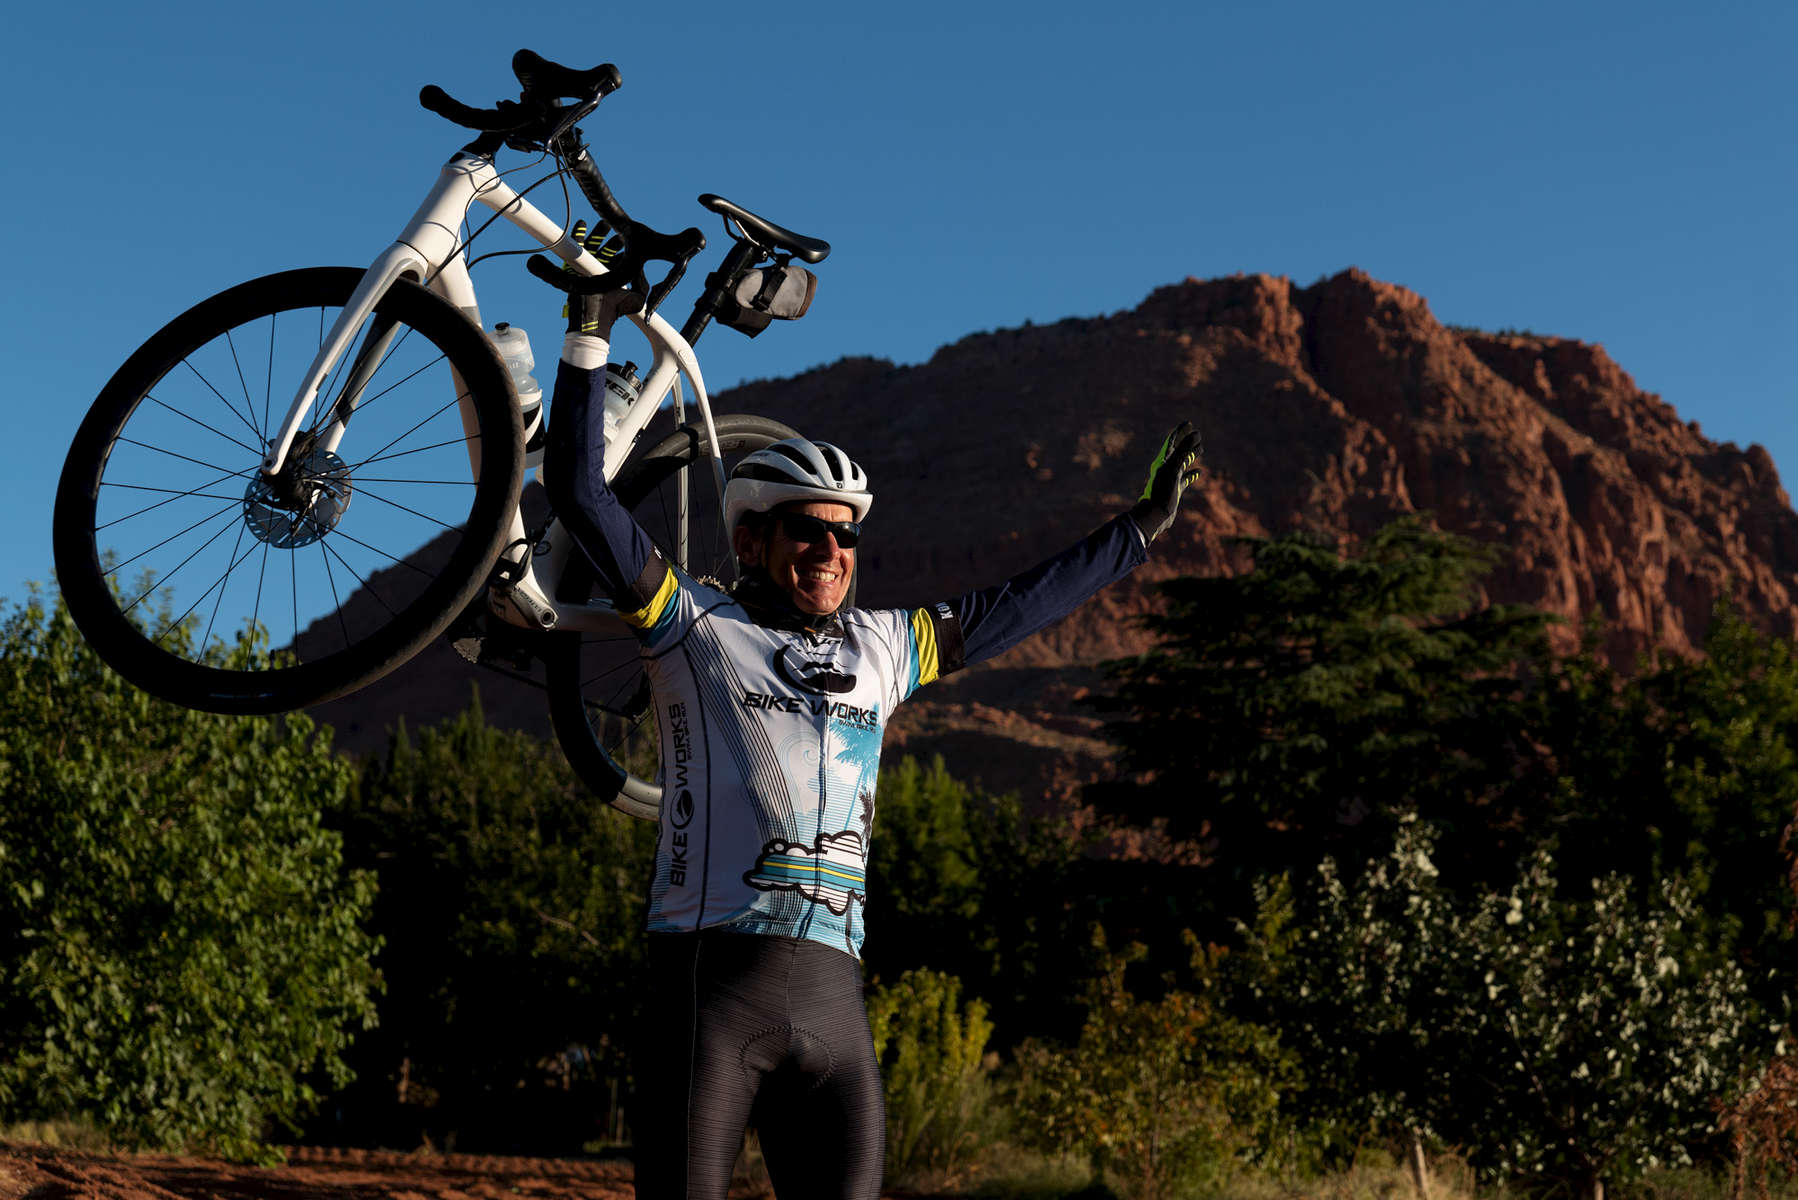 Senior cyclist Jeff Bryson aged sixty four, poses for a portrait during the Huntsman World Senior Games on October 11, 2019 in St. George, Utah.